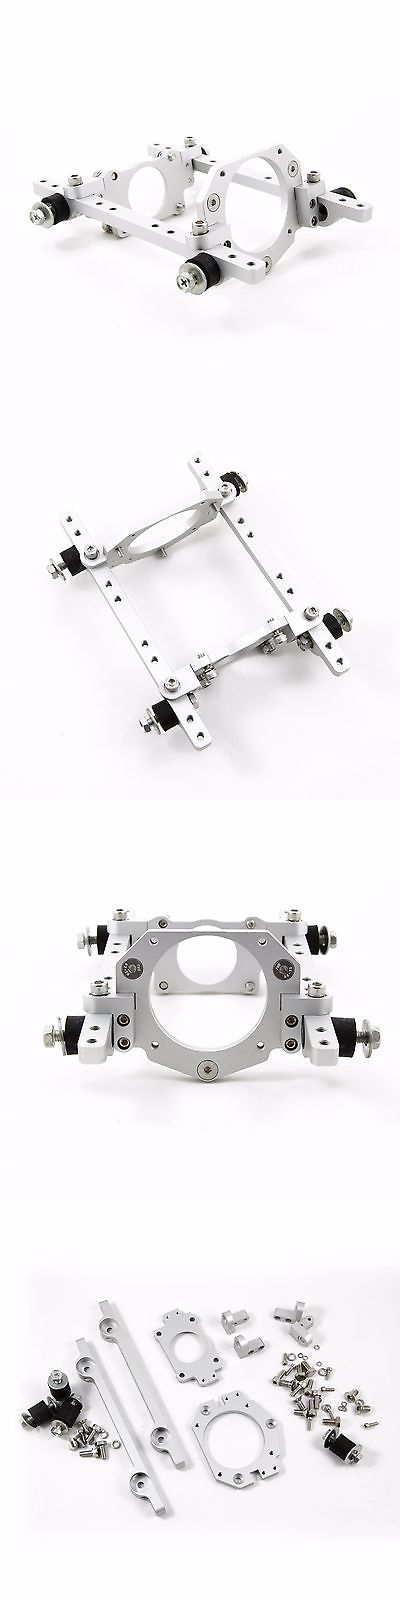 Boats and Watercraft 34058: Cnc Machined Quick Release Engine Mount Zenoah Qd Rcmk K30s, Rc Model Boat Gas -> BUY IT NOW ONLY: $32 on eBay!